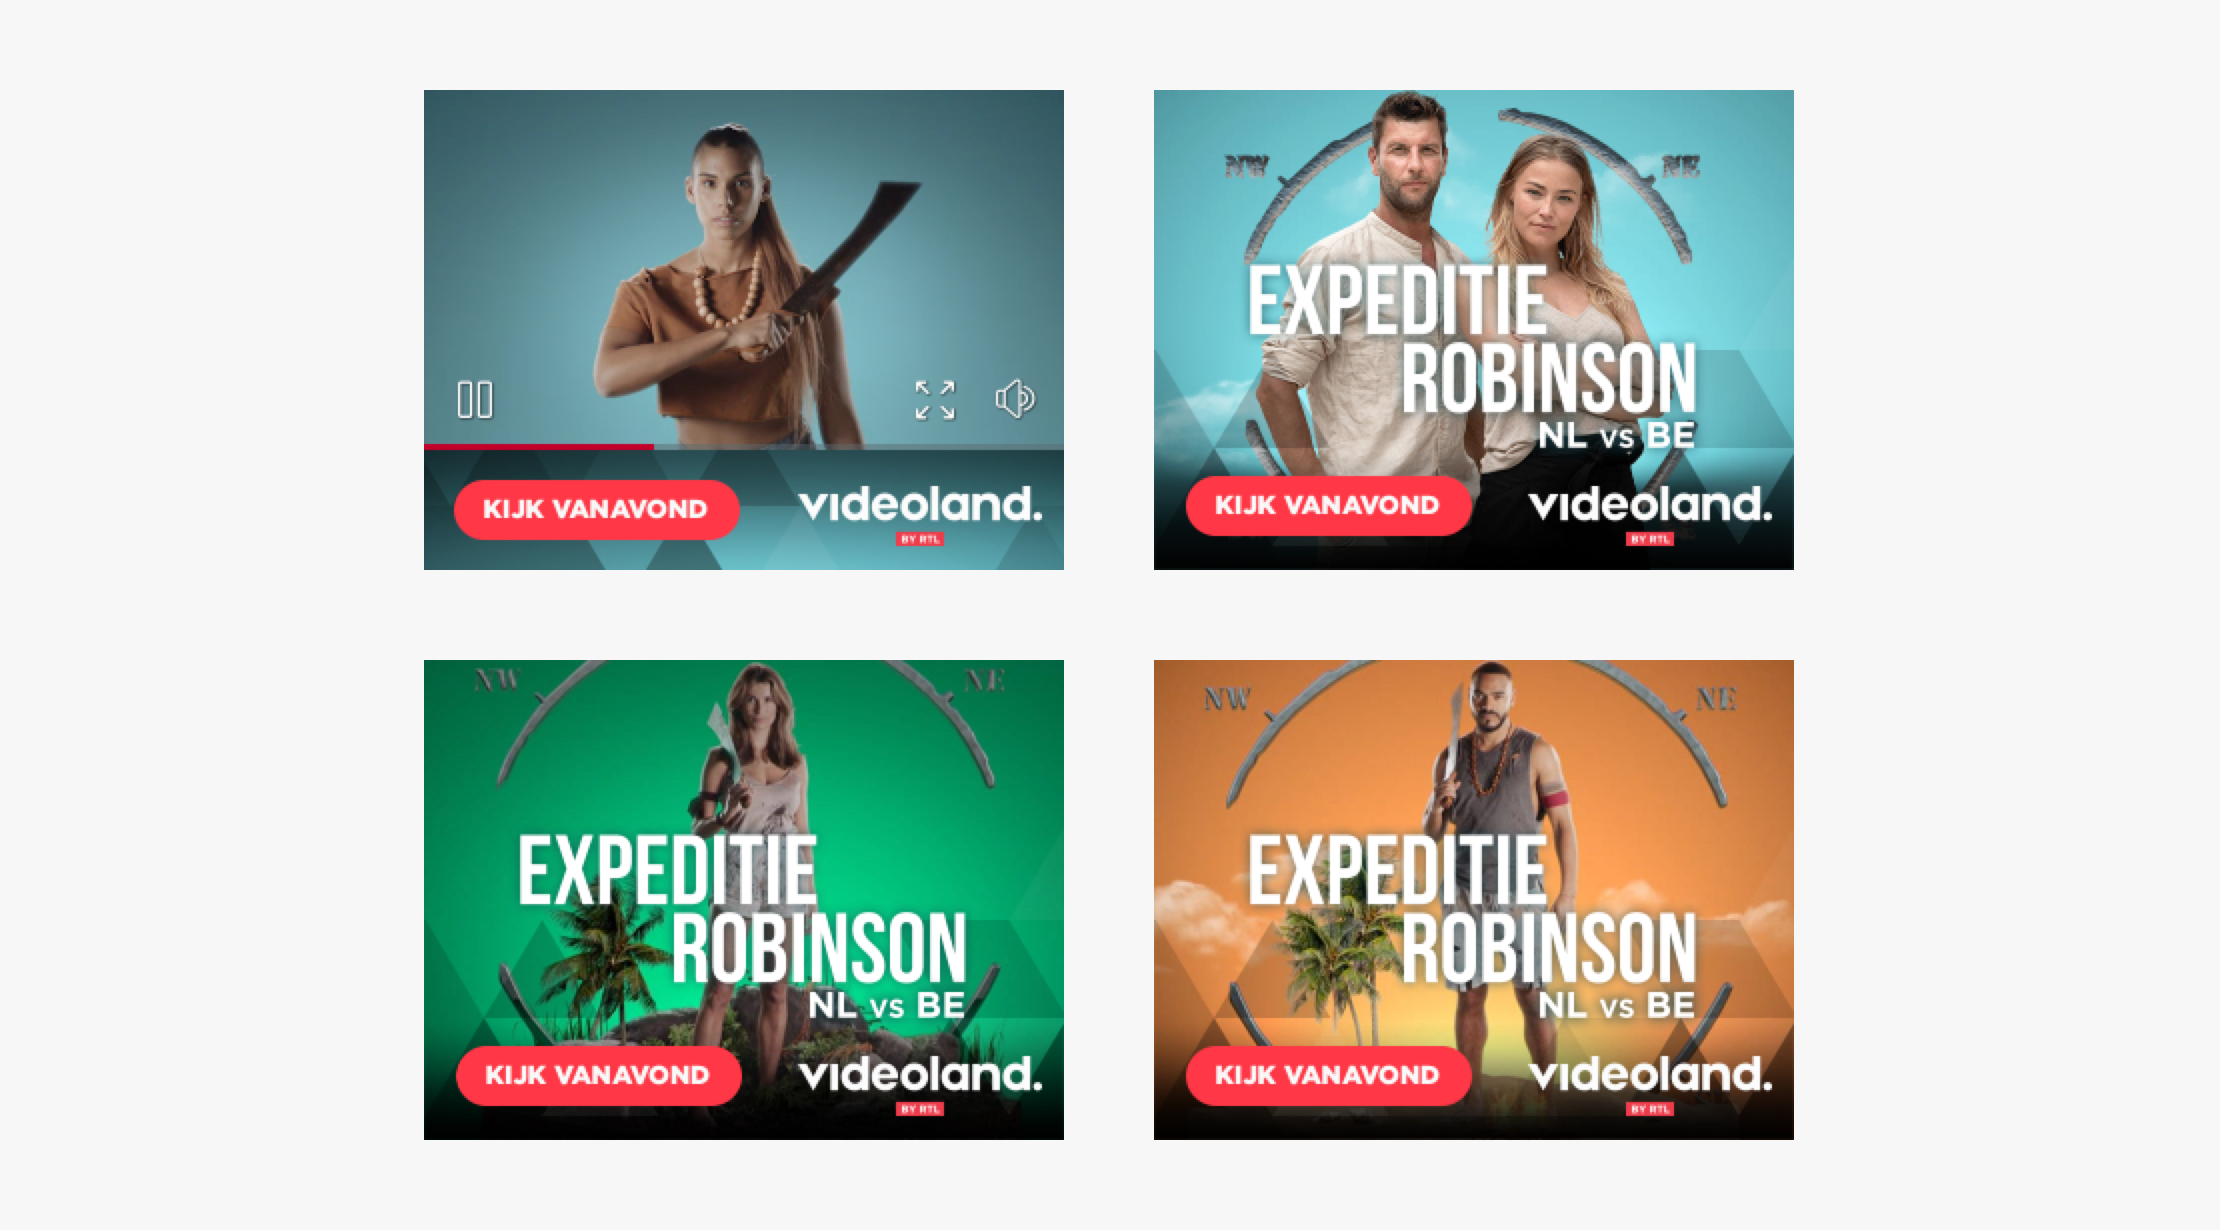 Expeditie Robinson Ad types